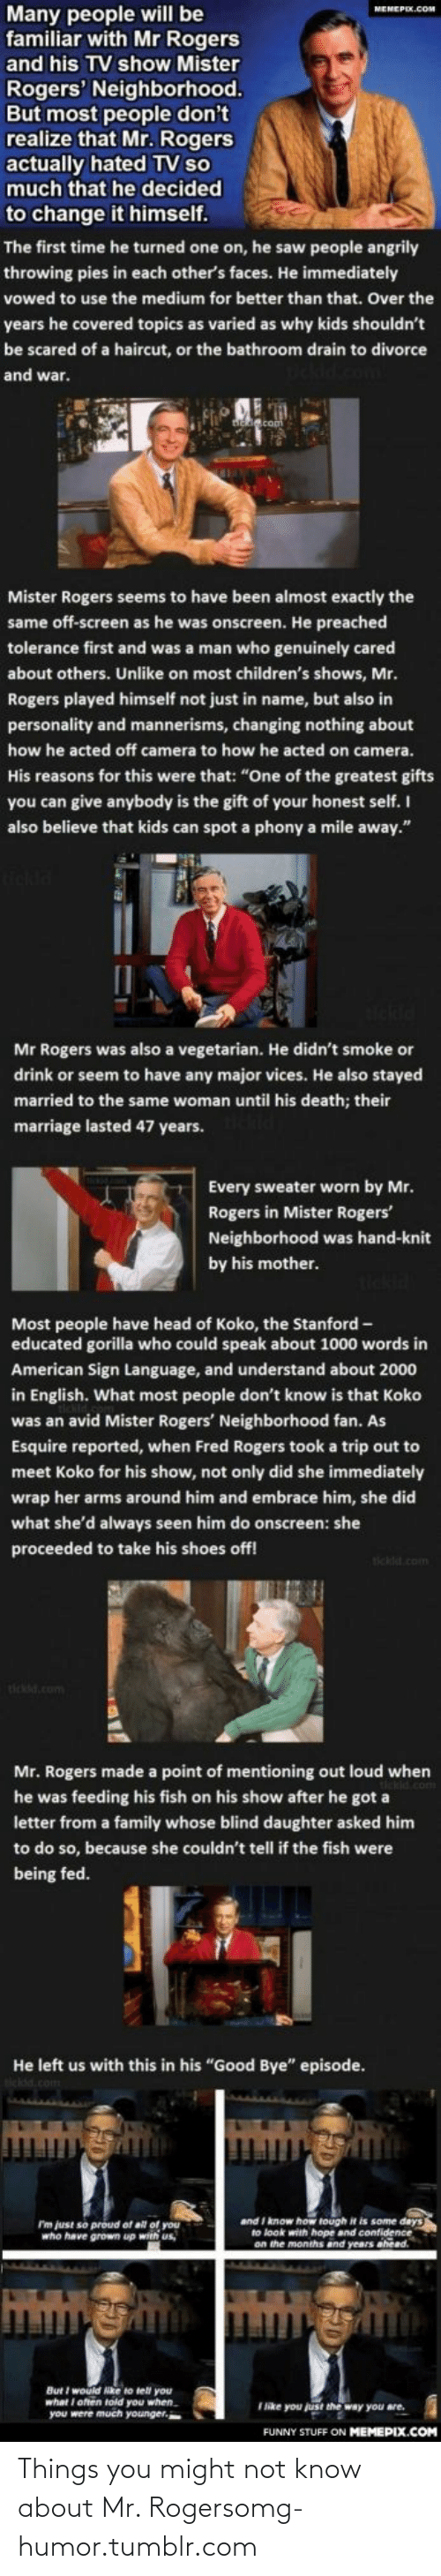 "fred rogers: Many people will be  familiar with Mr Rogers  MEMEPEX.COM  and his TV show Mister  Rogers' Neighborhood.  But most people don't  realize that Mr. Rogers  actually hated TV so  much that he decided  to change it himself.  The first time he turned one on, he saw people angrily  throwing pies in each other's faces. He immediately  vowed to use the medium for better than that. Over the  years he covered topics as varied as why kids shouldn't  be scared of a haircut, or the bathroom drain to divorce  and war.  Mister Rogers seems to have been almost exactly the  same off-screen as he was onscreen. He preached  tolerance first and was a man who genuinely cared  about others. Unlike on most children's shows, Mr.  Rogers played himself not just in name, but also in  personality and mannerisms, changing nothing about  how he acted off camera to how he acted on camera.  His reasons for this were that: ""One of the greatest gifts  you can give anybody is the gift of your honest self. I  also believe that kids can spot a phony a mile away.""  Mr Rogers was also a vegetarian. He didn't smoke or  drink or seem to have any major vices. He also stayed  married to the same woman until his death; their  marriage lasted 47 years.  Every sweater worn by Mr.  Rogers in Mister Rogers'  Neighborhood was hand-knit  by his mother.  Most people have head of Koko, the Stanford -  educated gorilla who could speak about 1000 words in  American Sign Language, and understand about 2000  in English. What most people don't know is that Koko  was an avid Mister Rogers' Neighborhood fan. As  Esquire reported, when Fred Rogers took a trip out to  meet Koko for his show, not only did she immediately  wrap her arms around him and embrace him, she did  what she'd always seen him do onscreen: she  proceeded to take his shoes off!  tickld.com  tickd.com  Mr. Rogers made a point of mentioning out loud when  he was feeding his fish on his show after he got a  letter from a family whose blind daughter asked him  to do so, because she couldn't tell if the fish were  being fed.  He left us with this in his ""Good Bye"" episode.  and I know how tough it is some days  to look with hope and confidence  on the months and years ahead.  Im just se preud of all of you  who have grown up with us,  But I would ke to tell you  what I often told you when.  you were much younger.  I like you just the way you are.  FUNNY STUFF ON MEMEPIX.COM Things you might not know about Mr. Rogersomg-humor.tumblr.com"